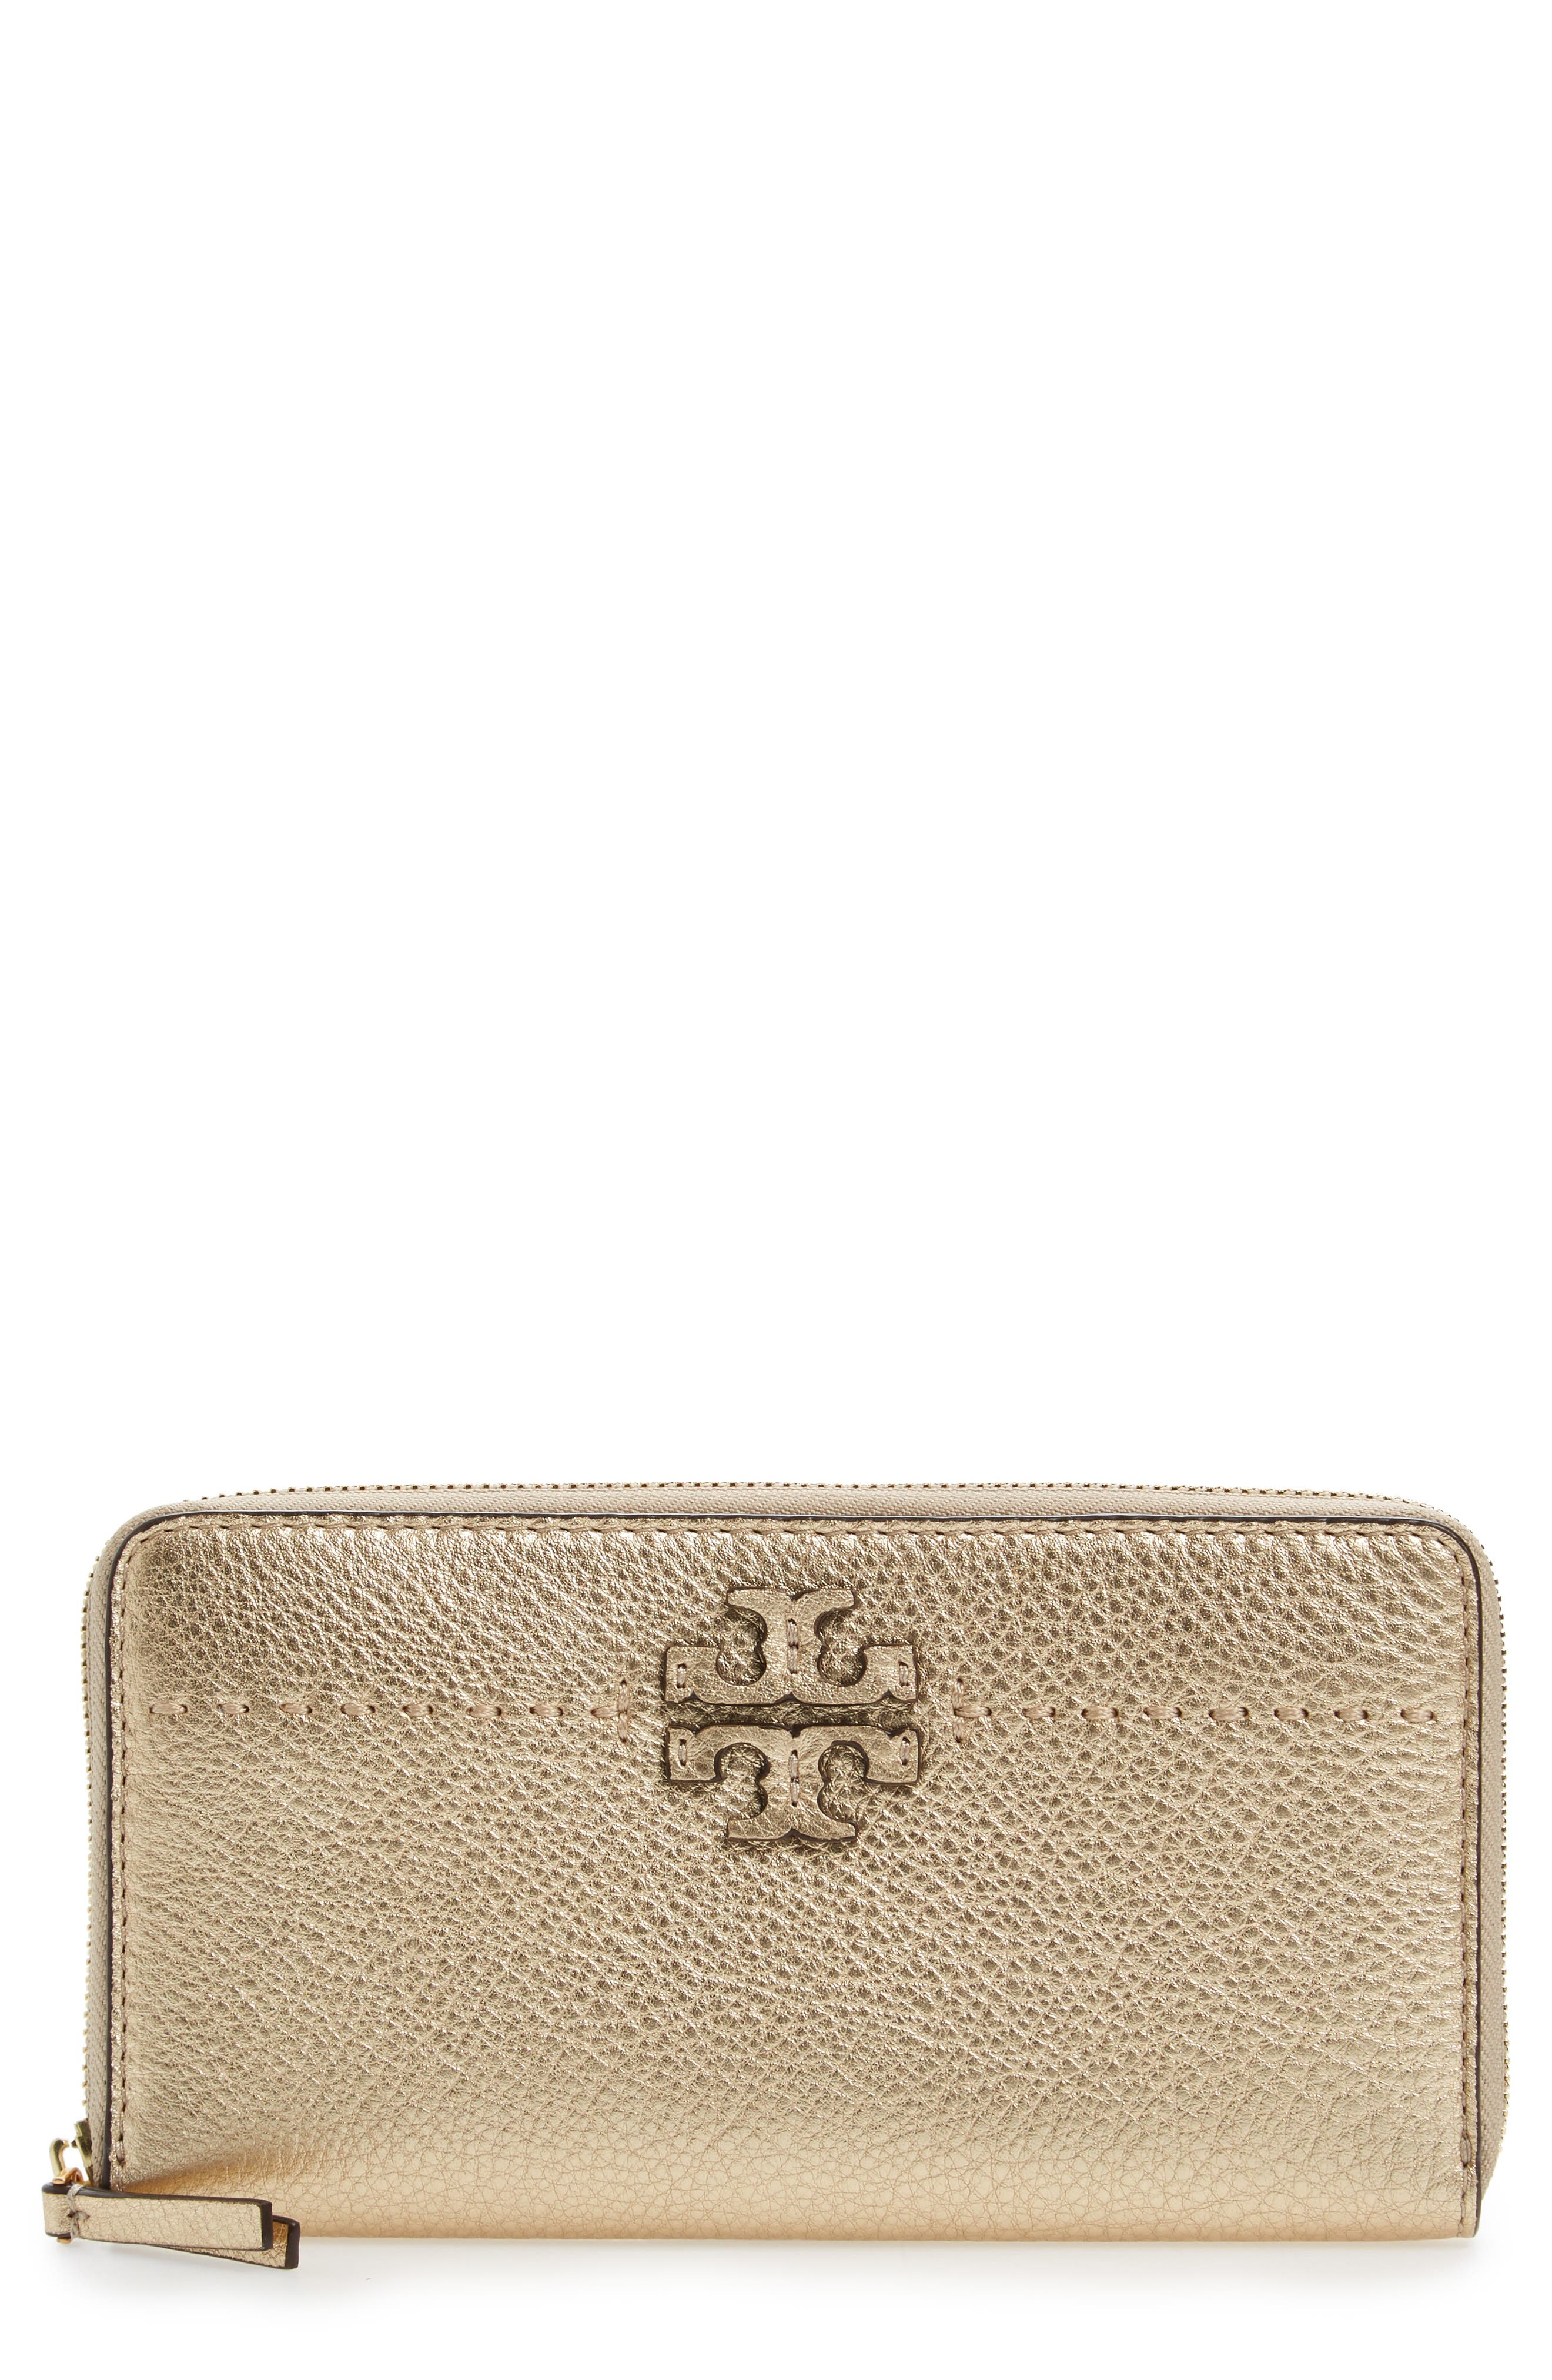 McGraw Leather Continental Wallet,                             Main thumbnail 1, color,                             710